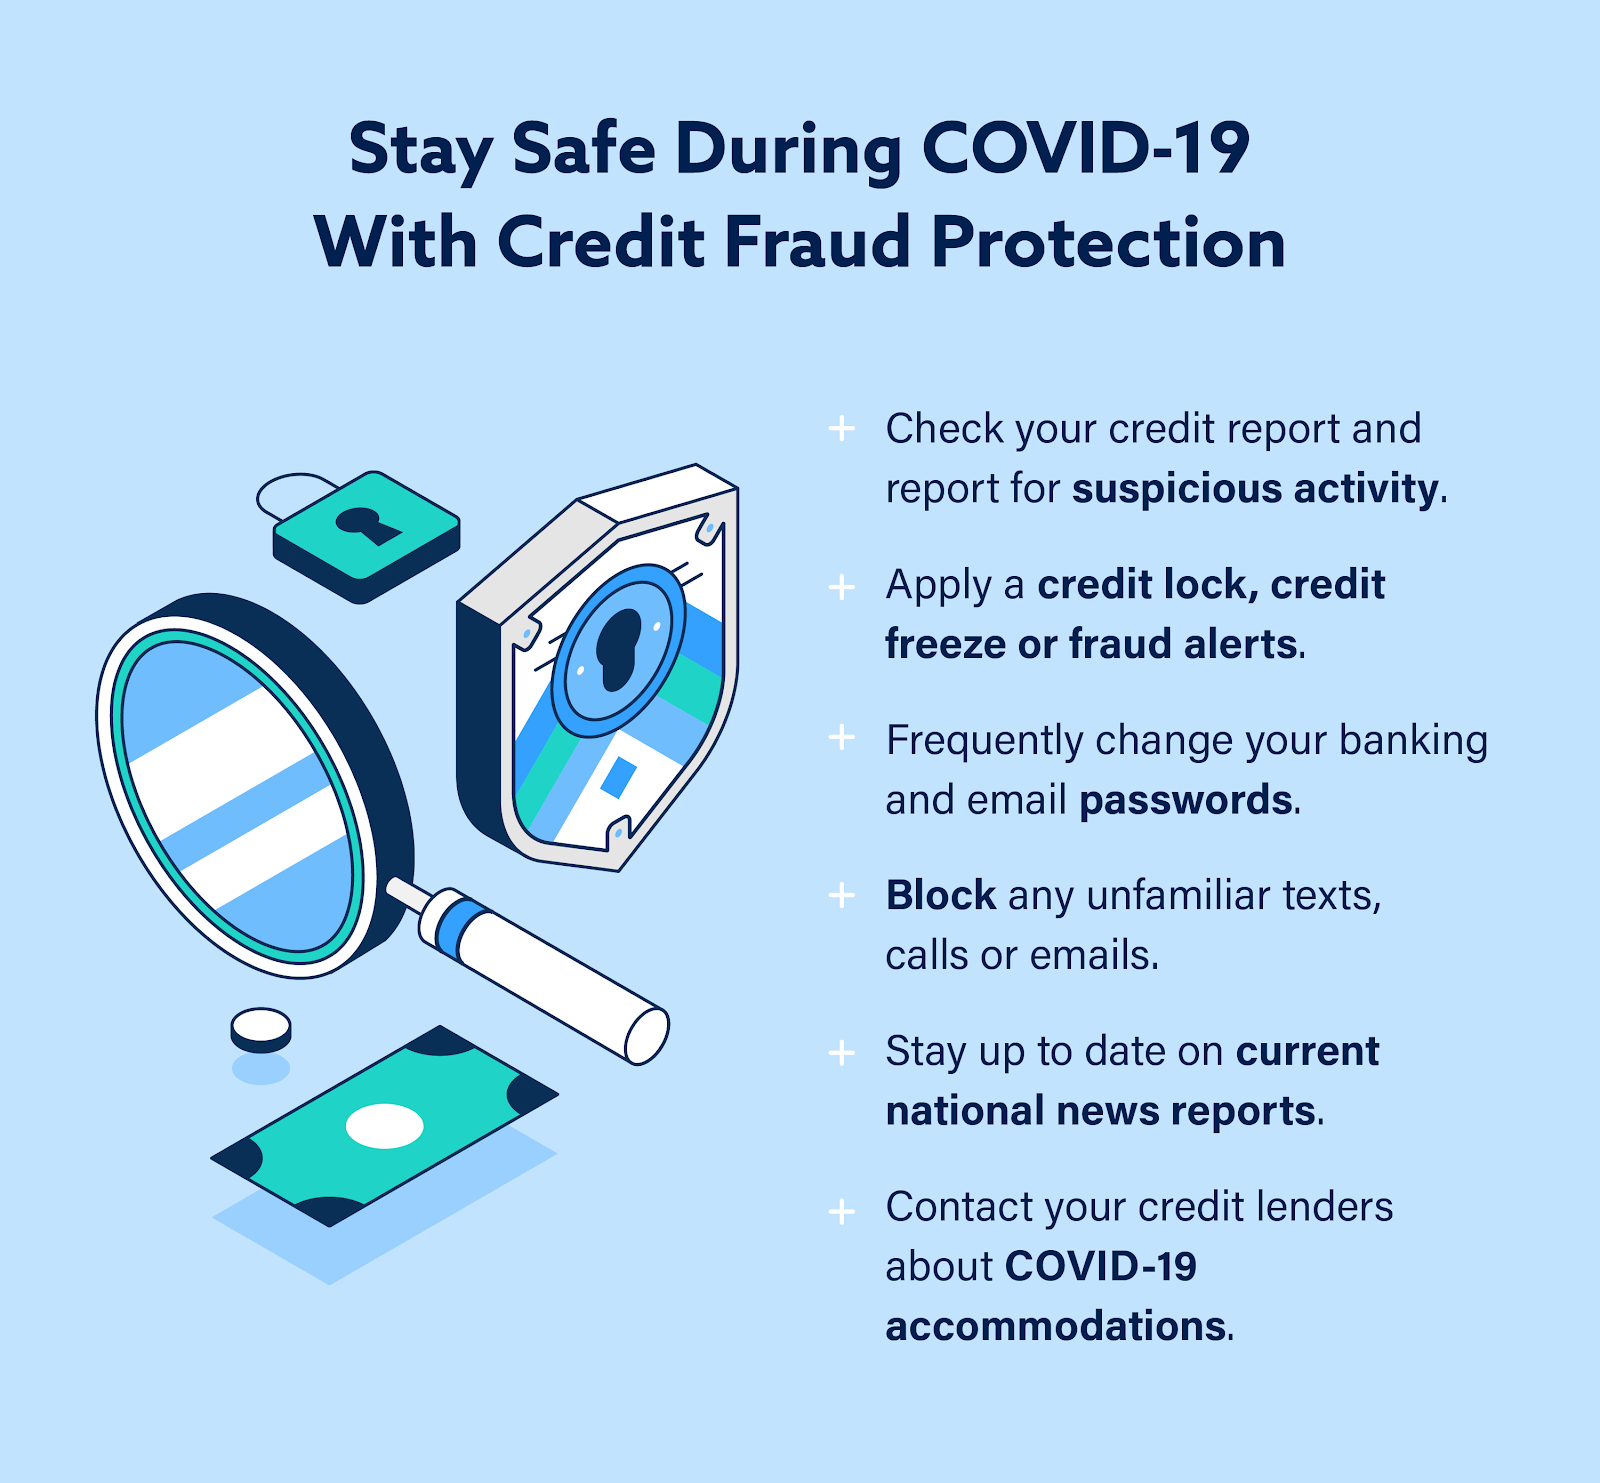 Graphic: How to Stay Safe with Credit Fraud Protection